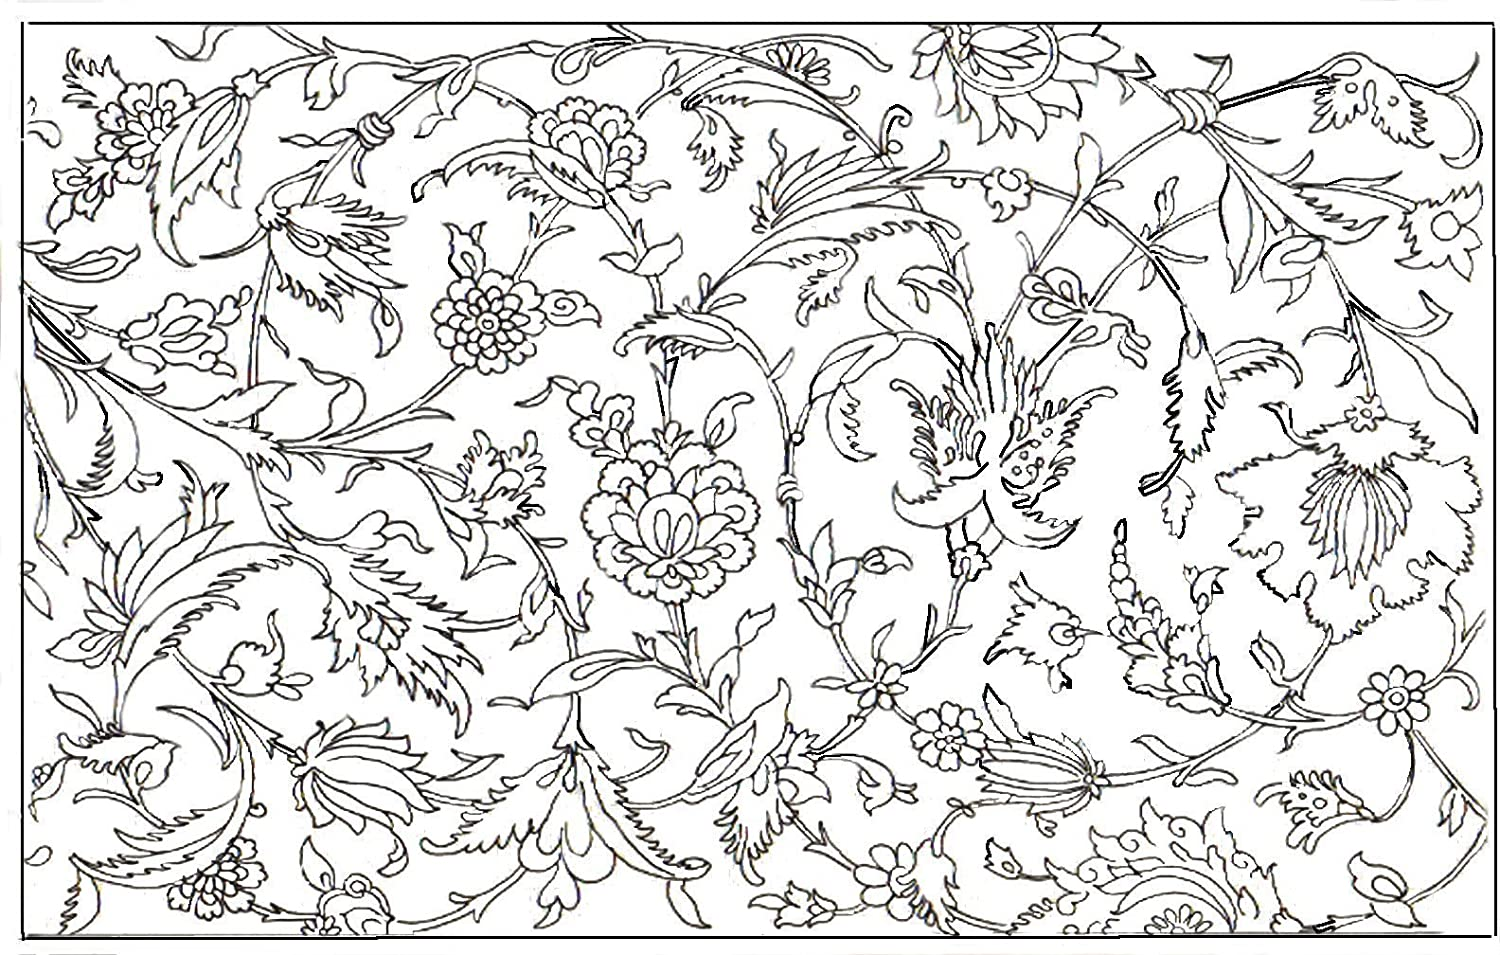 Adult Coloring Placemats -Wildflower Design Se t of 4 Now Available with Free Shipping on Prime